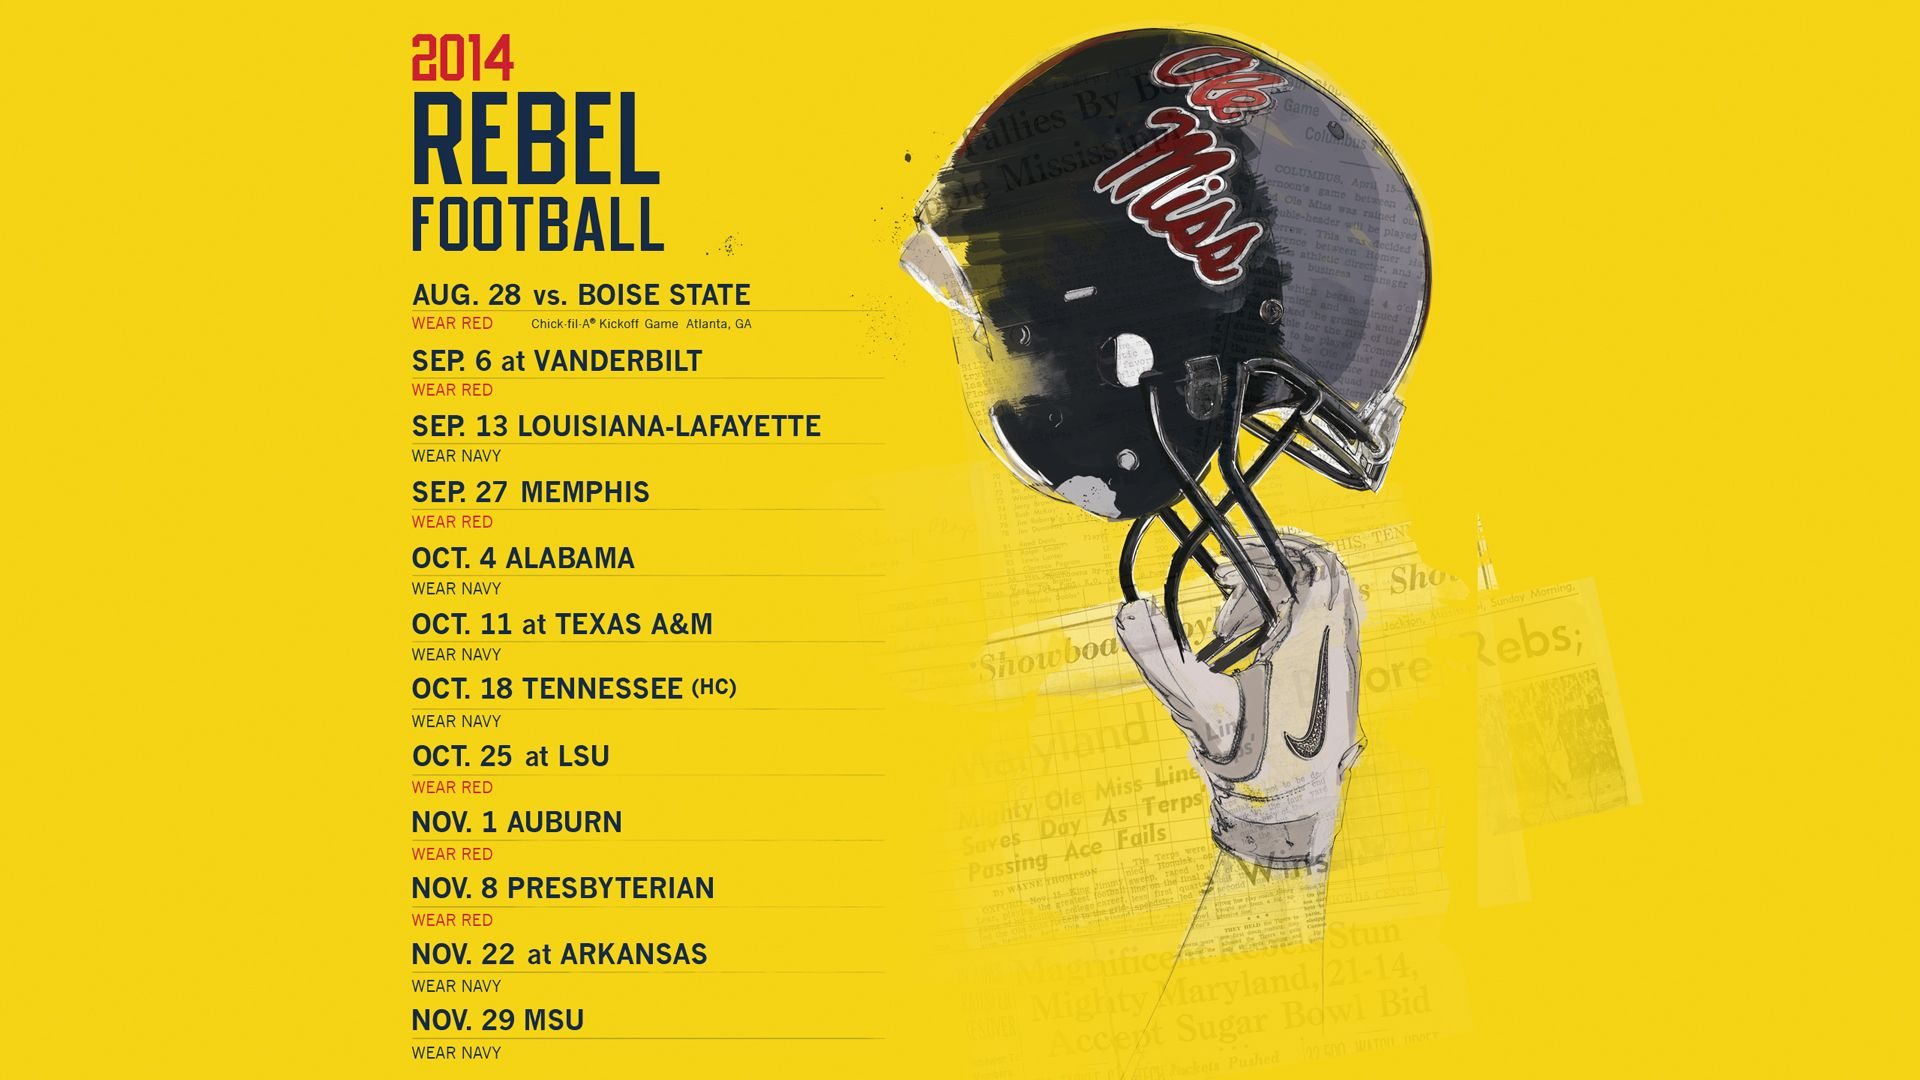 Ole Miss Wallpapers Browser Themes More For Rebels Fans Ole Miss Football Ole Miss Ole Miss Rebels